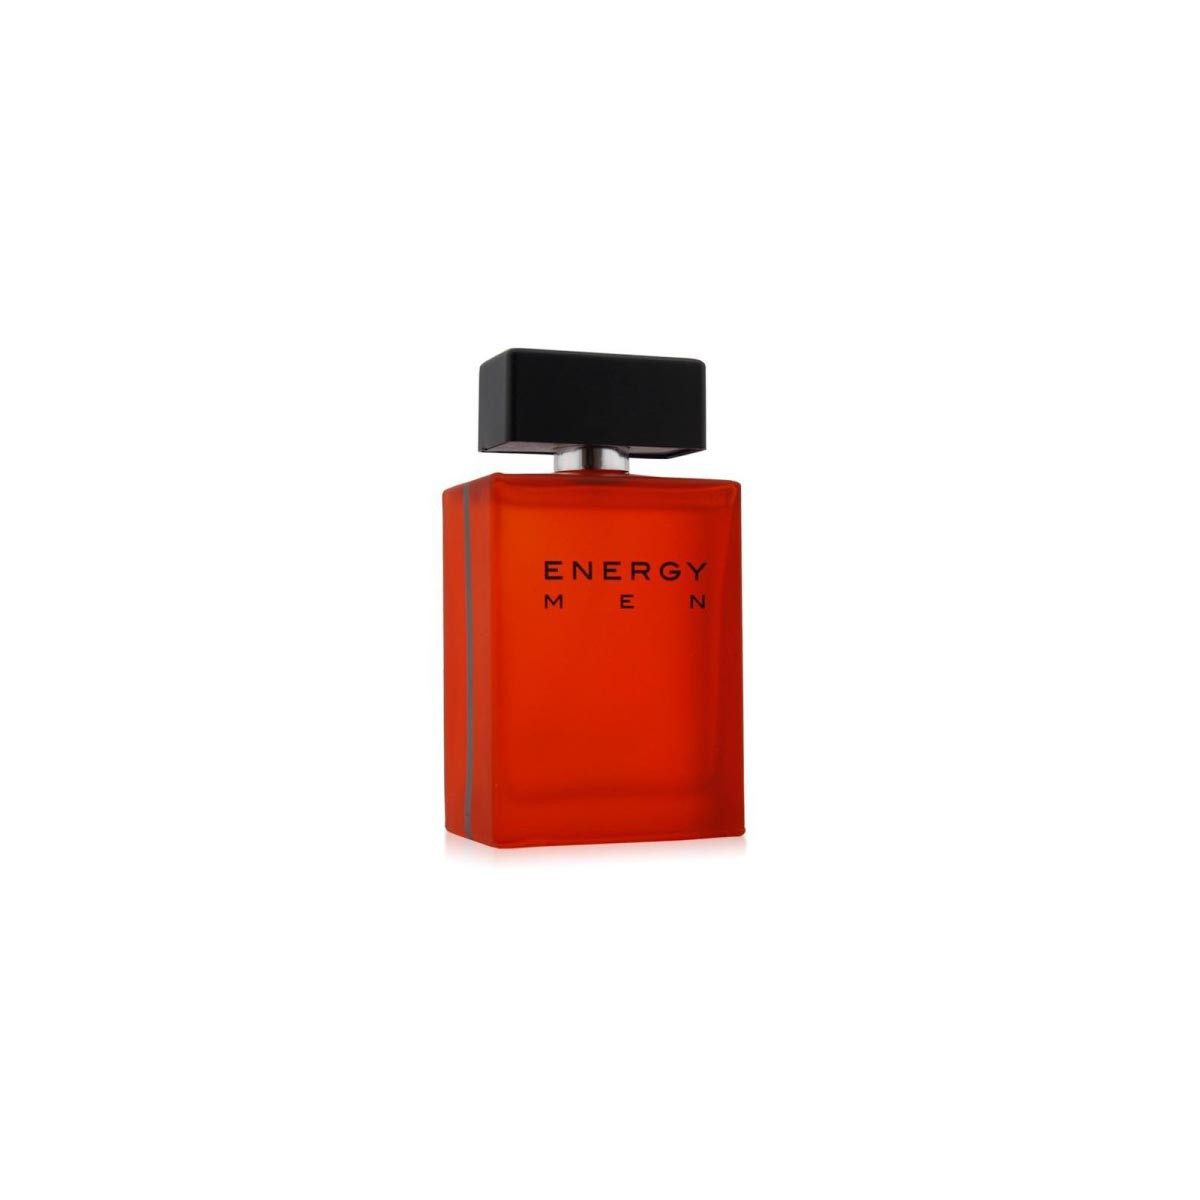 Consumo Energy Men Eau De Toilette 100 ml